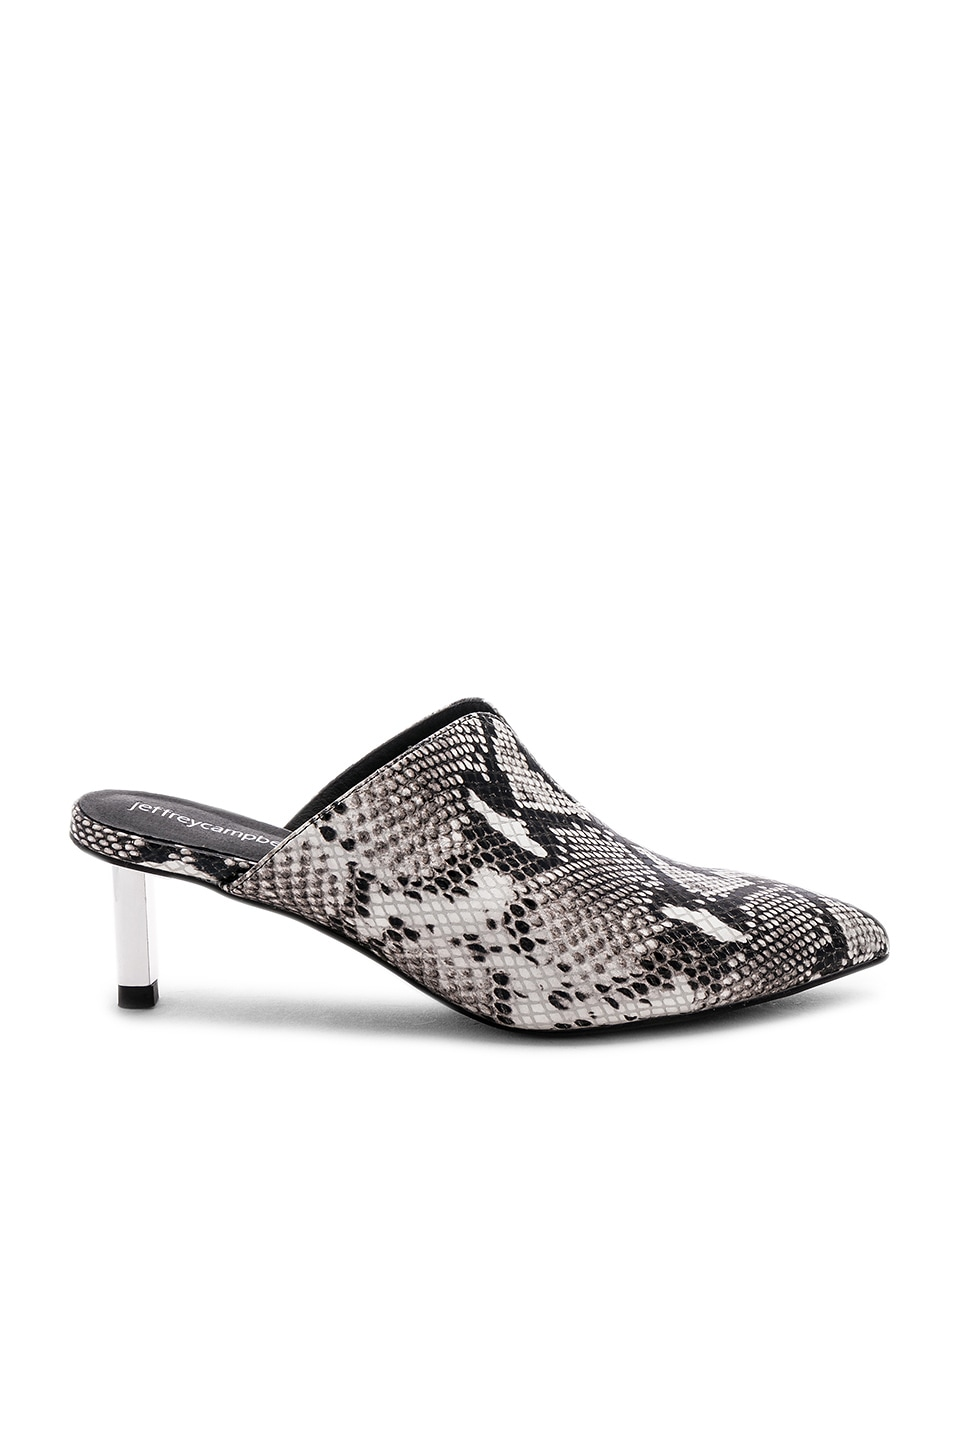 Jeffrey Campbell Tableau Mule in Grey Python